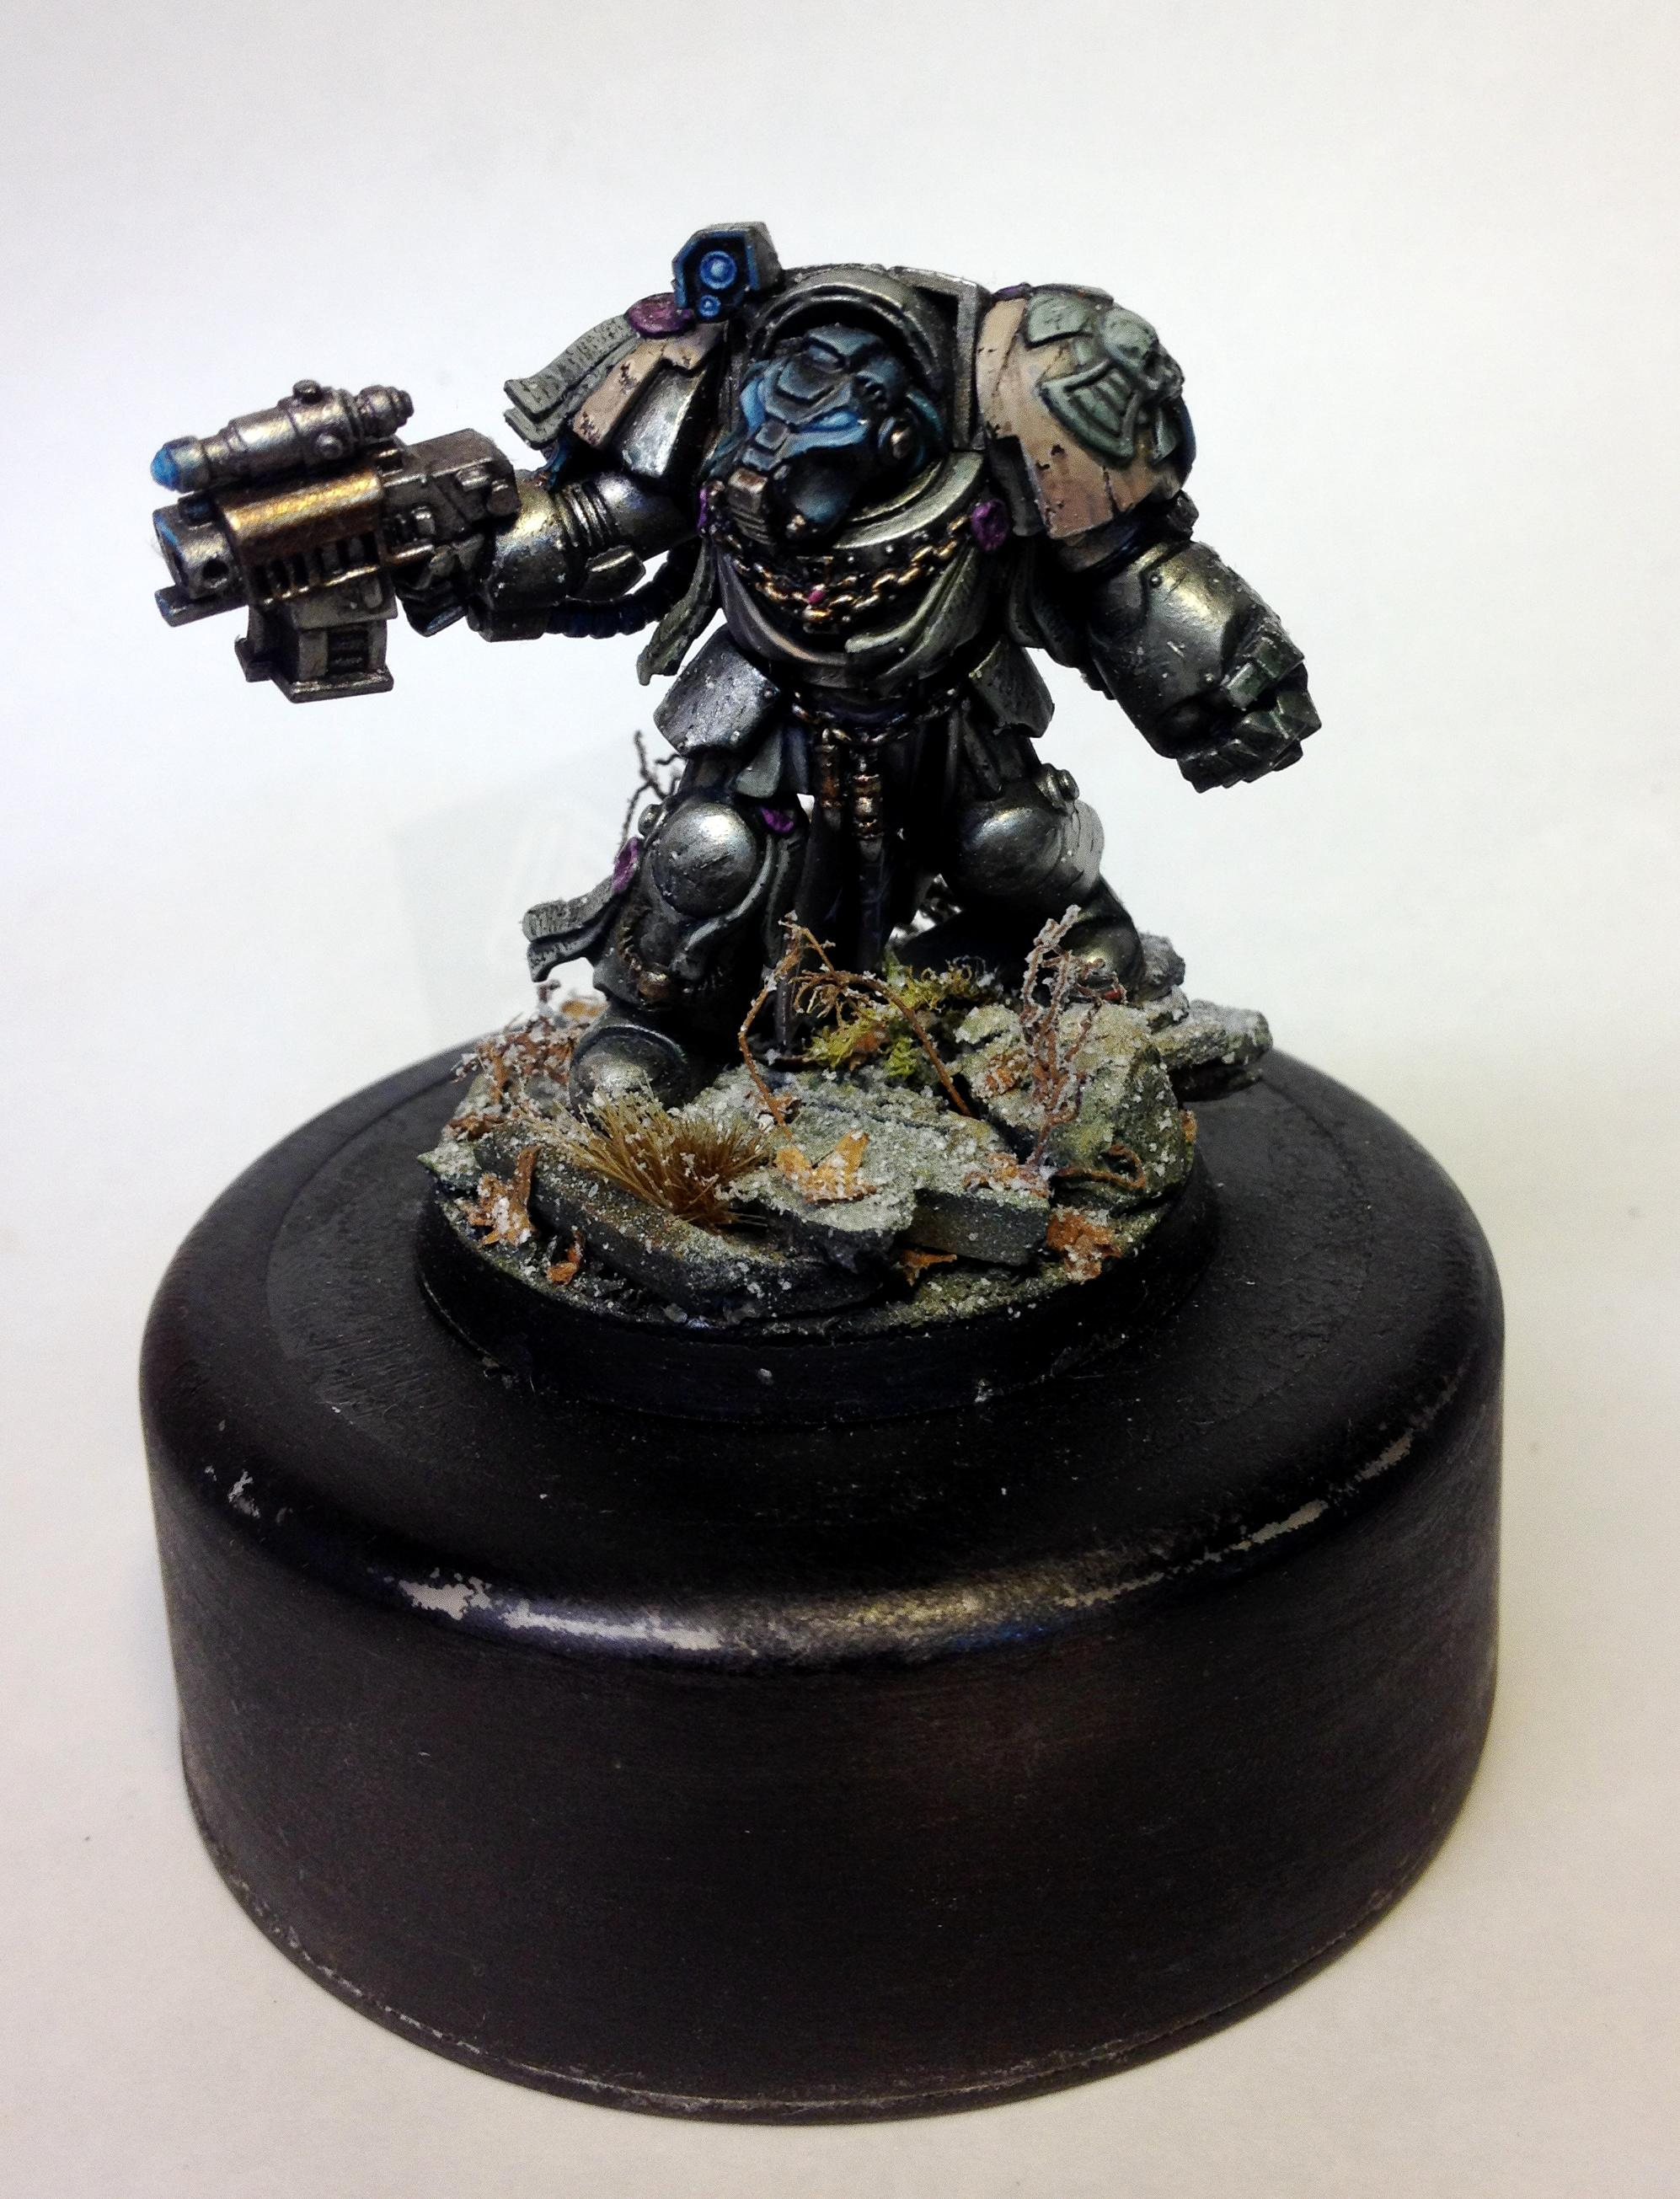 Power Fist, Purity Seal, Space Marines, Storm Bolter, Terminator Armor, Warhammer 40,000